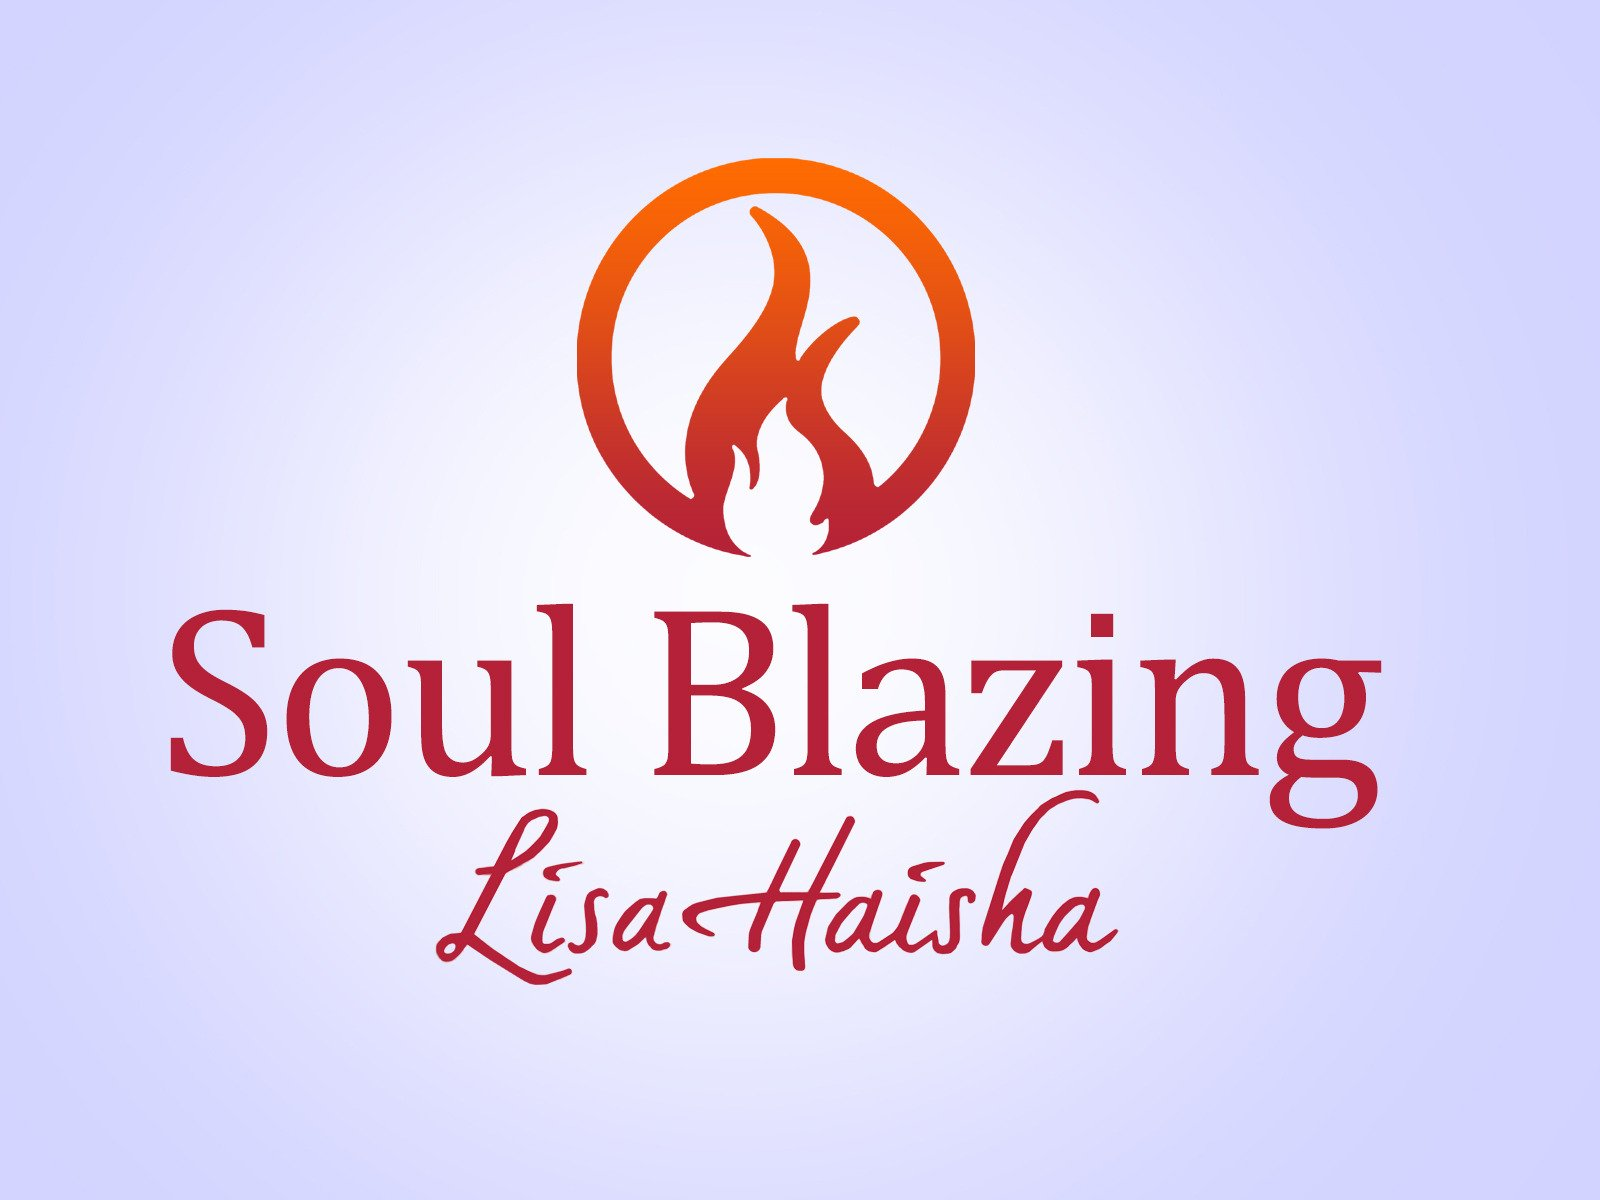 SoulBlazing with Lisa Haisha on Amazon Prime Video UK